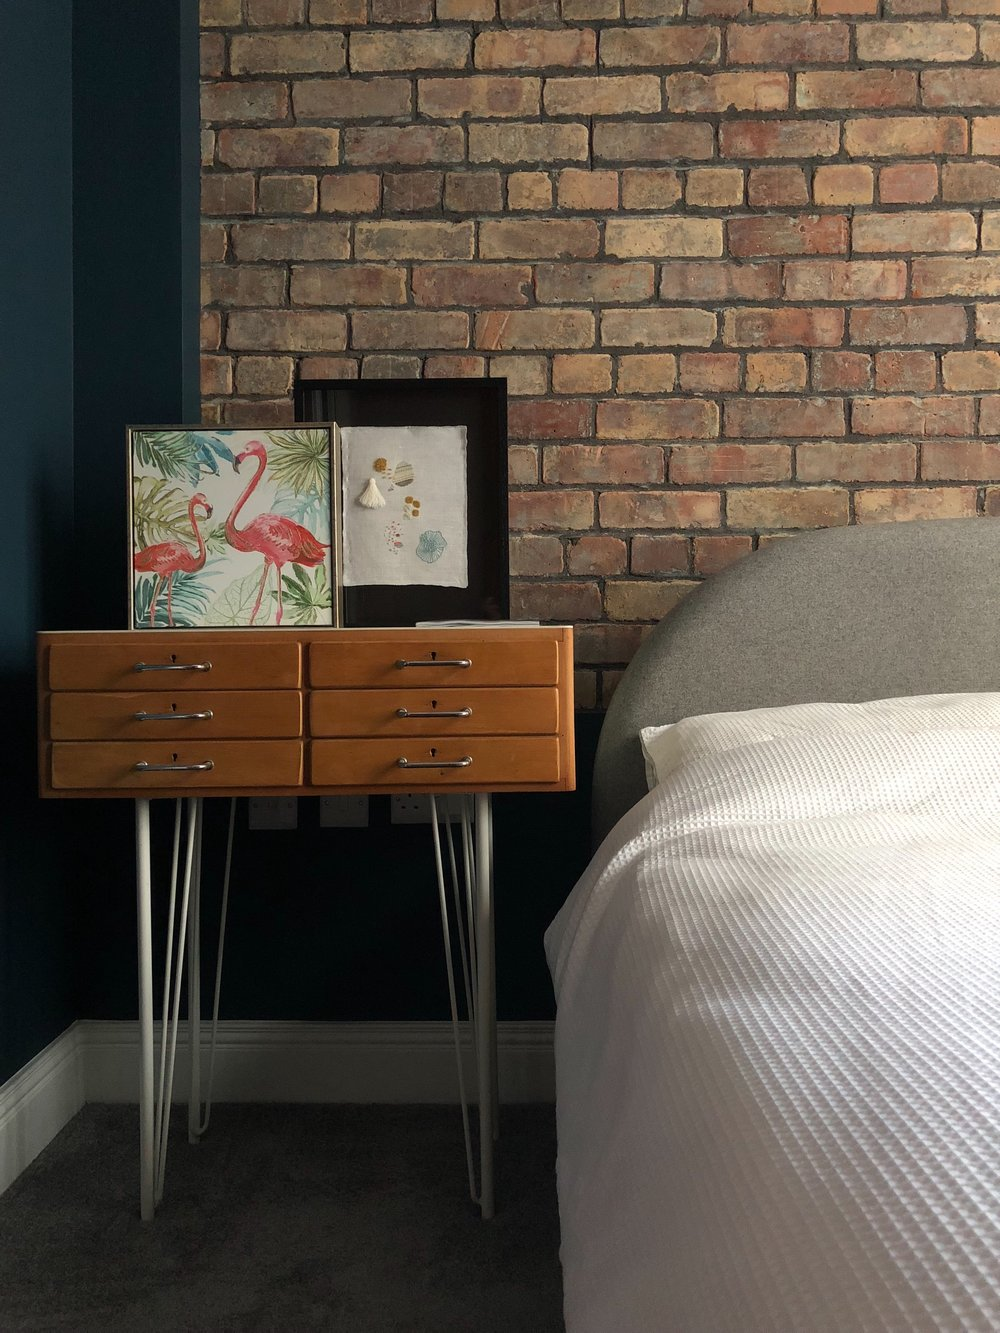 Hairpin leg bedside table from Oscar & Oscar, Belfast